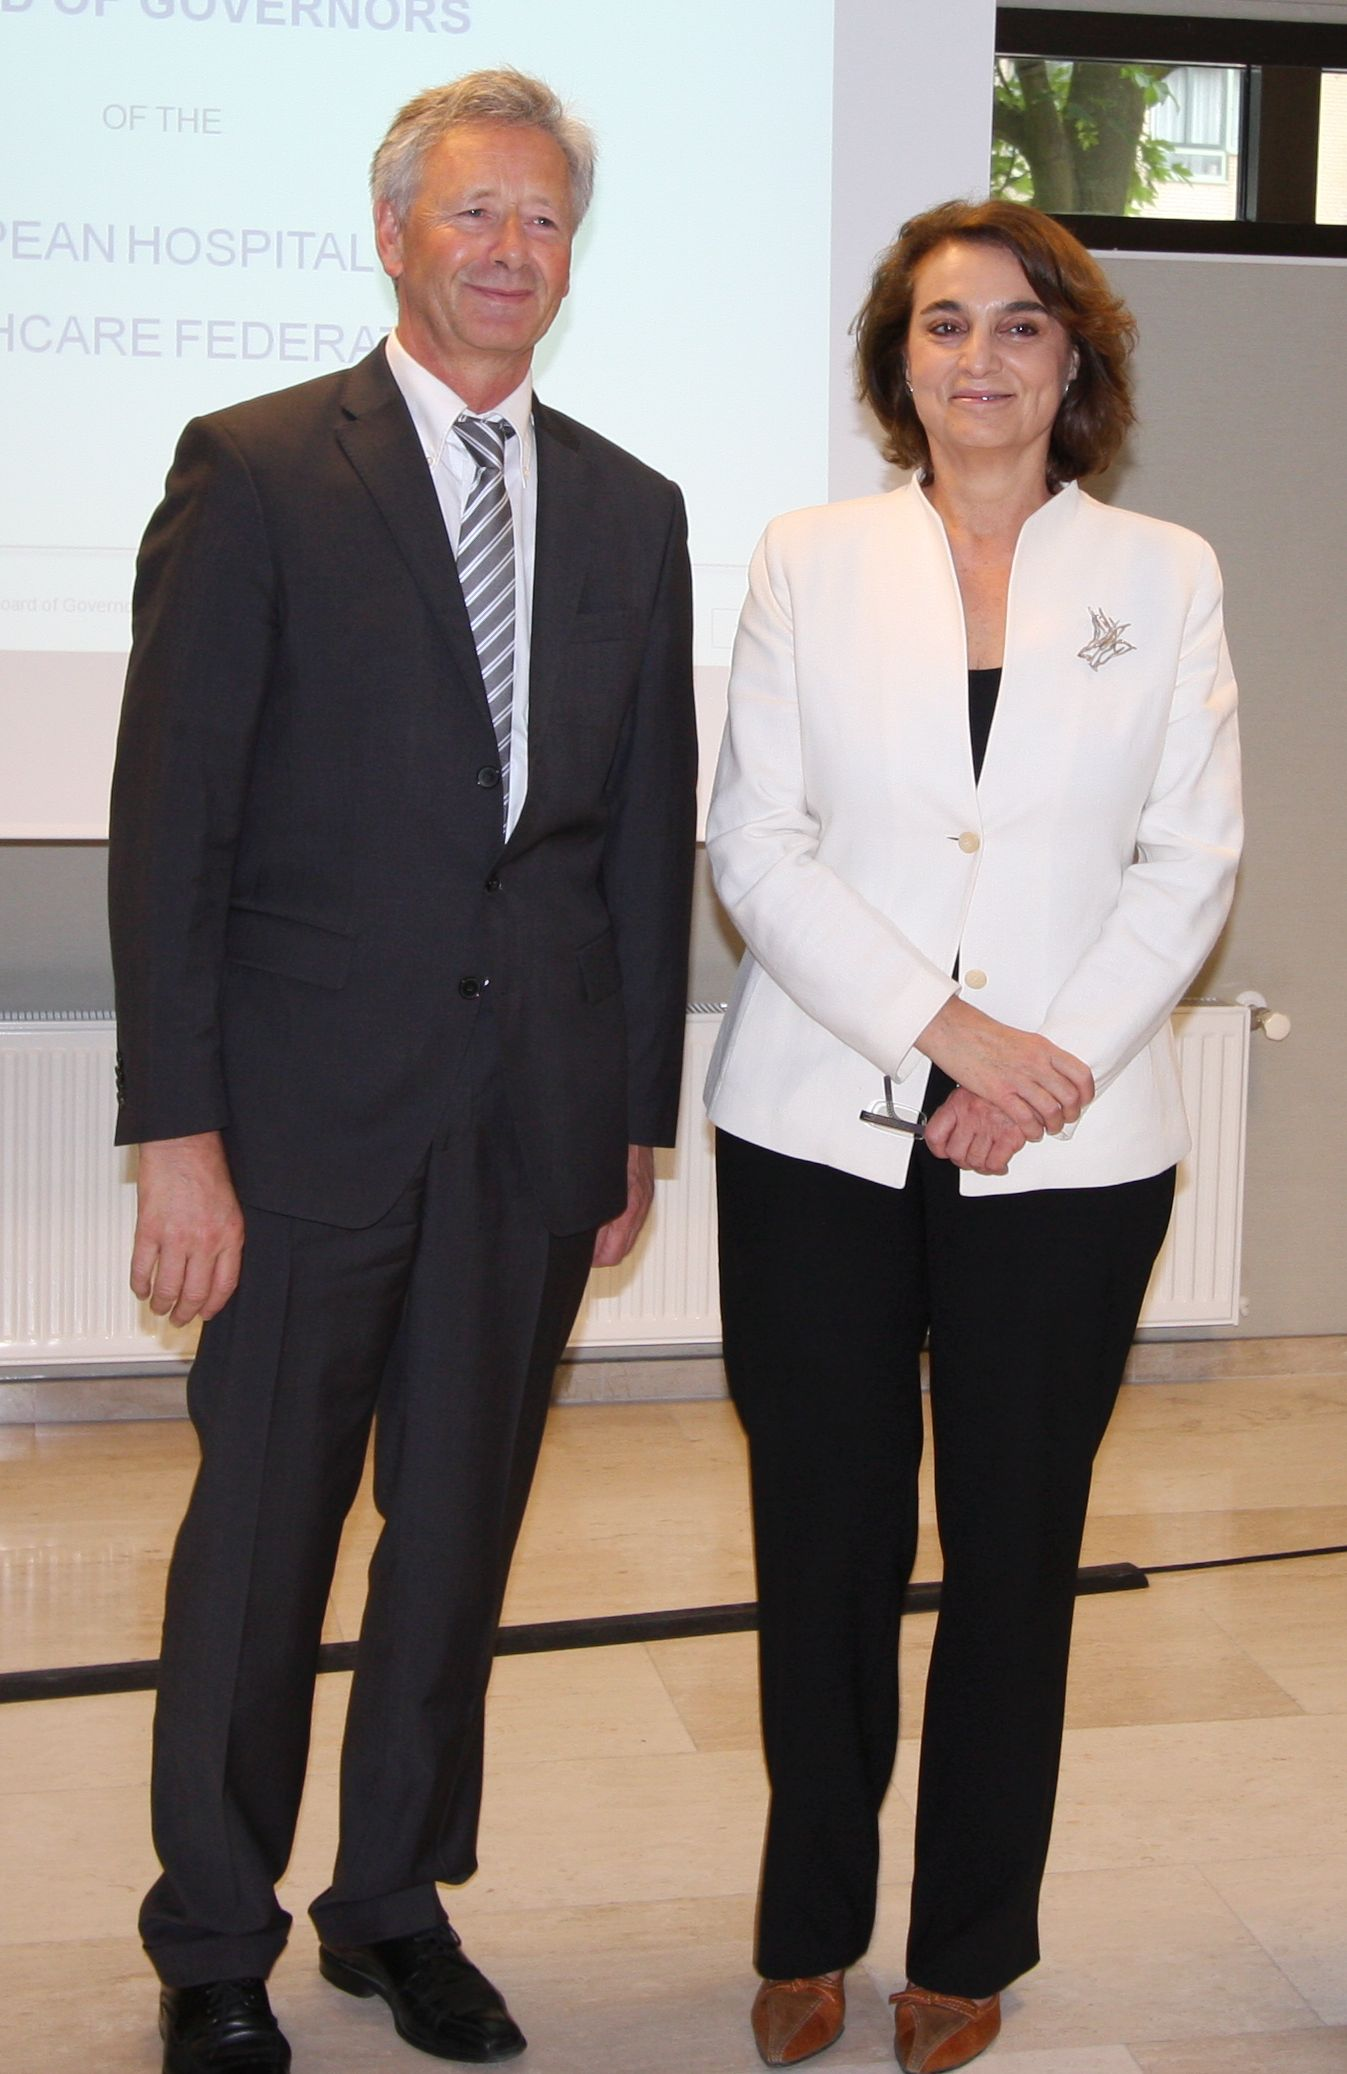 Georg Baum (past) and Sara Pupato (new)